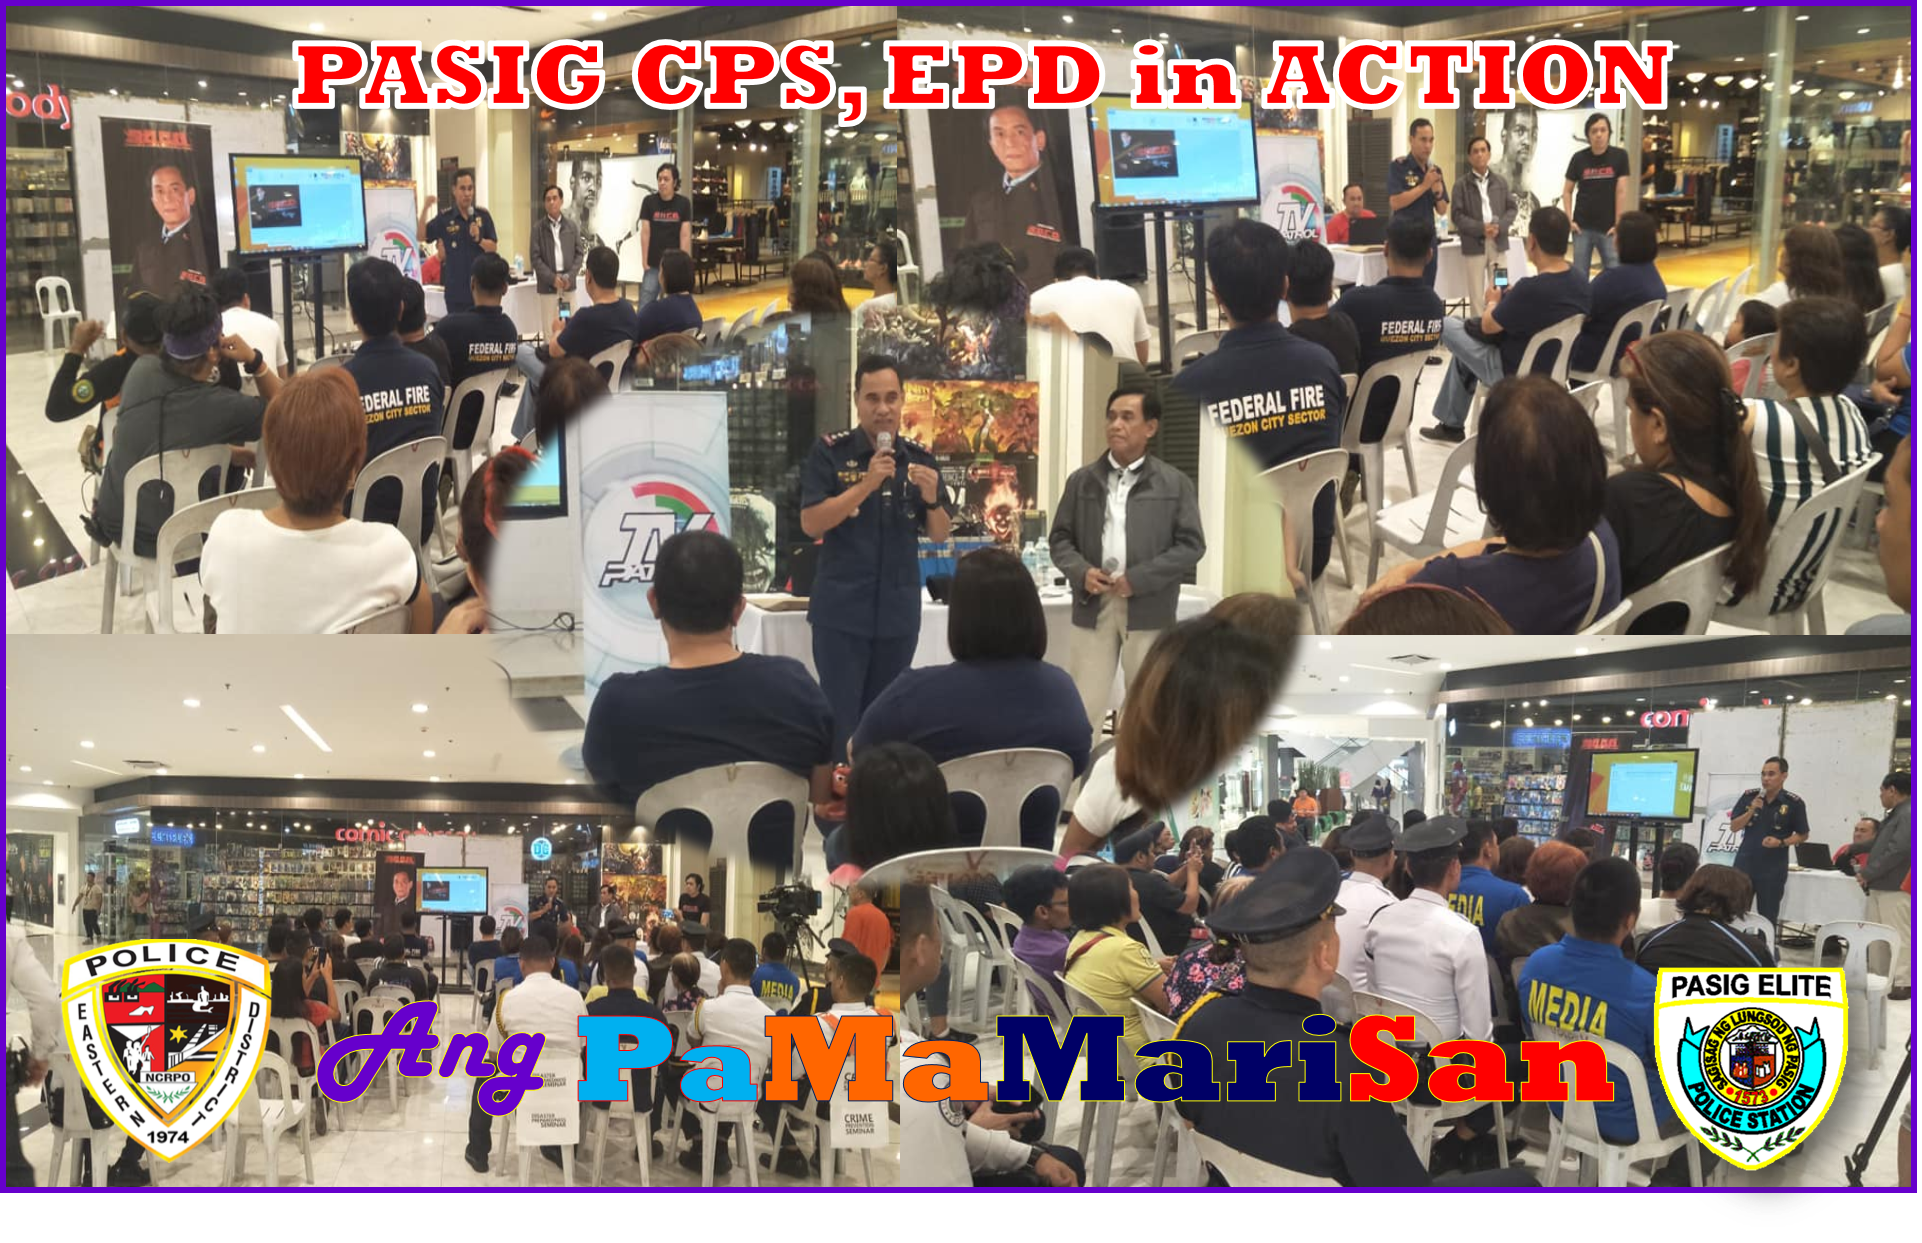 Pasig City Police conducted Anti-Criminality Awareness Lectures